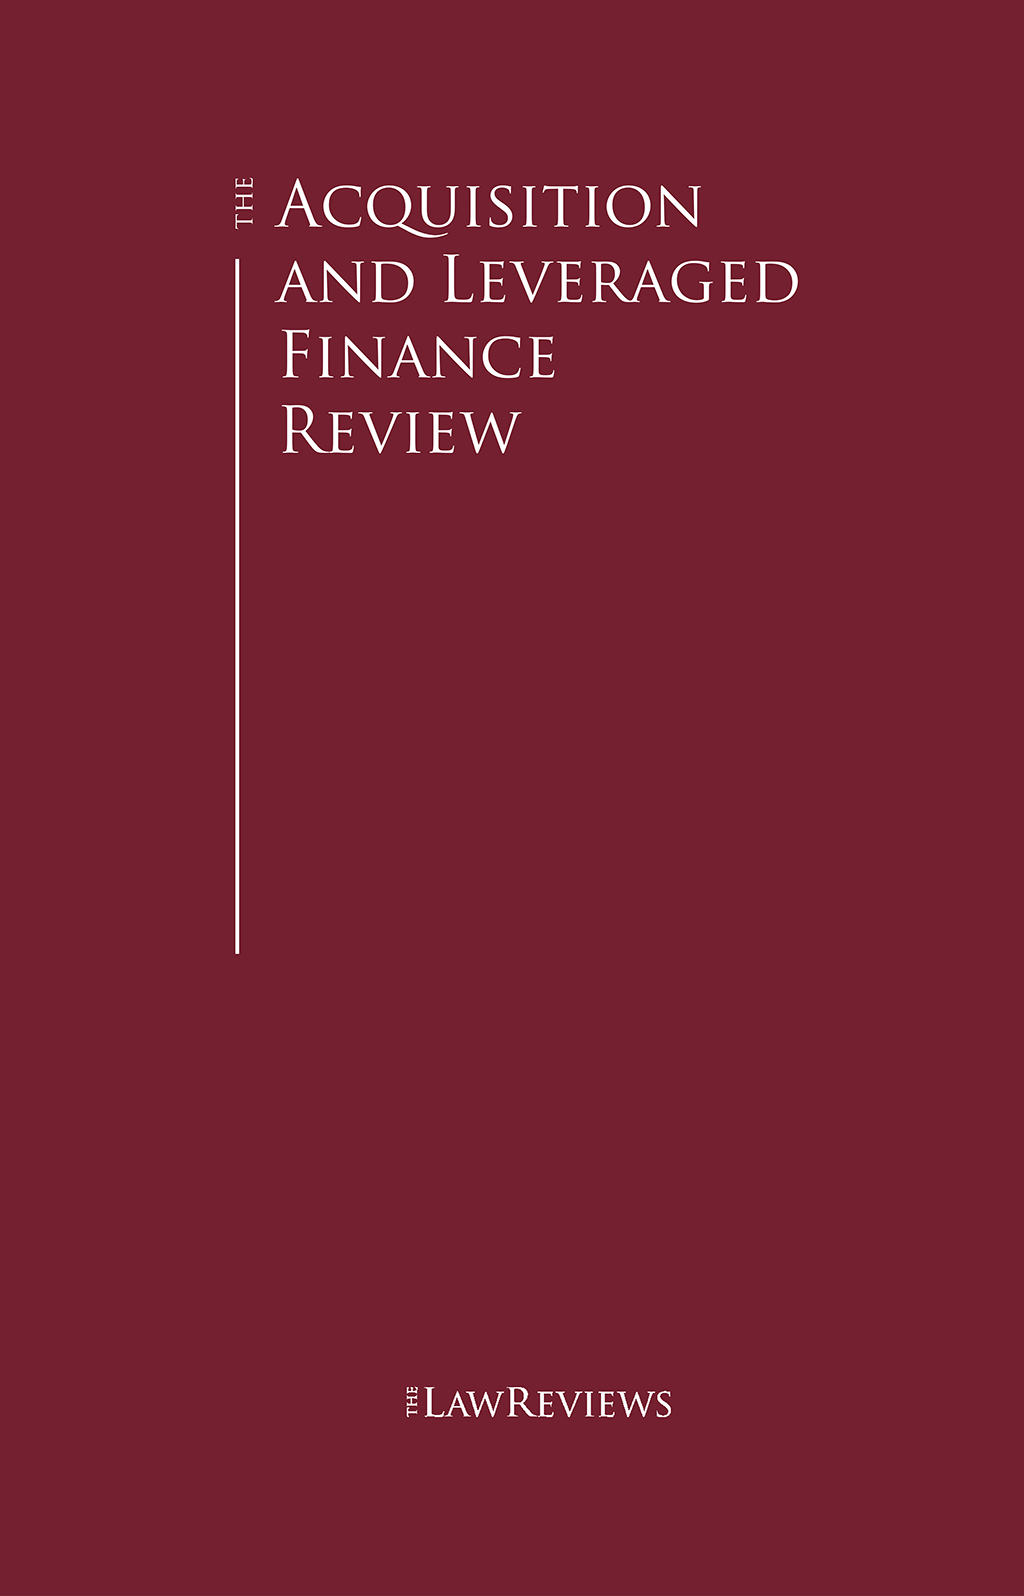 The Acquisition and Leveraged Finance Review